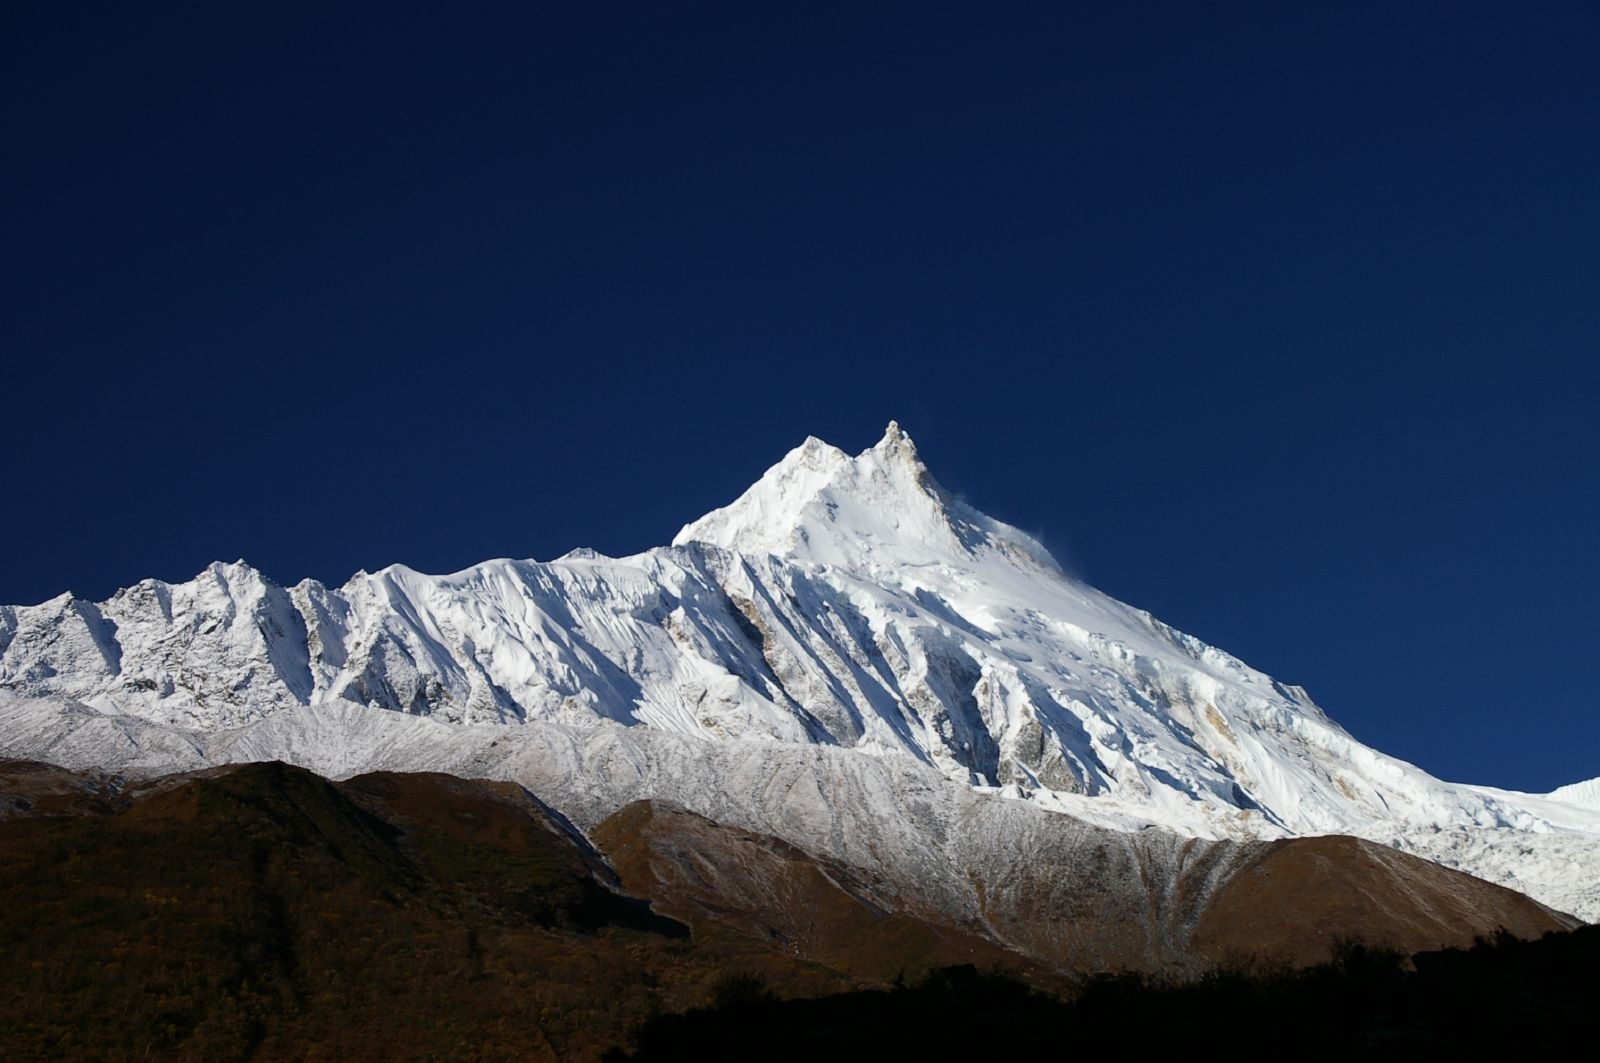 http://upload.wikimedia.org/wikipedia/commons/8/82/Manaslu,_from_base_camp_trip.jpg